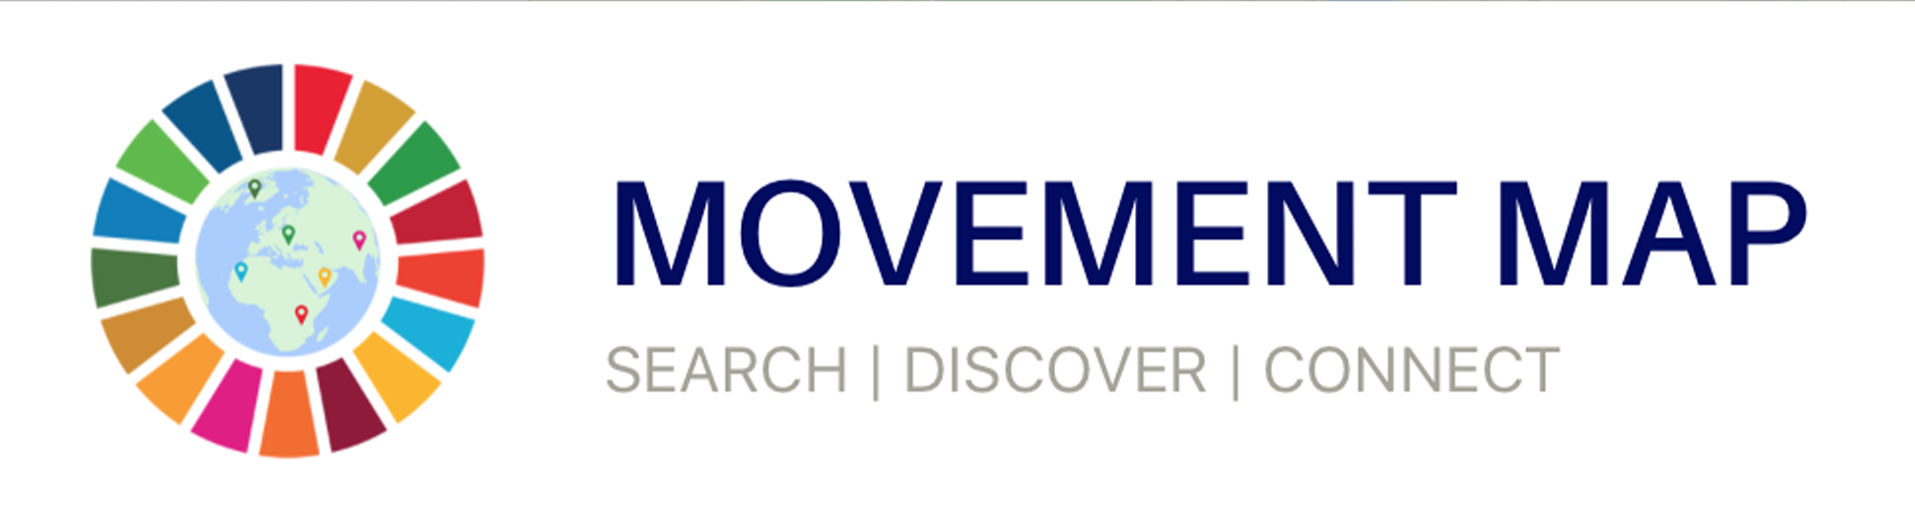 The Movement Map presents the scope and scale of the work being done by organizations across Atlantic Canada to achieve the UN Sustainable Development Goals. -